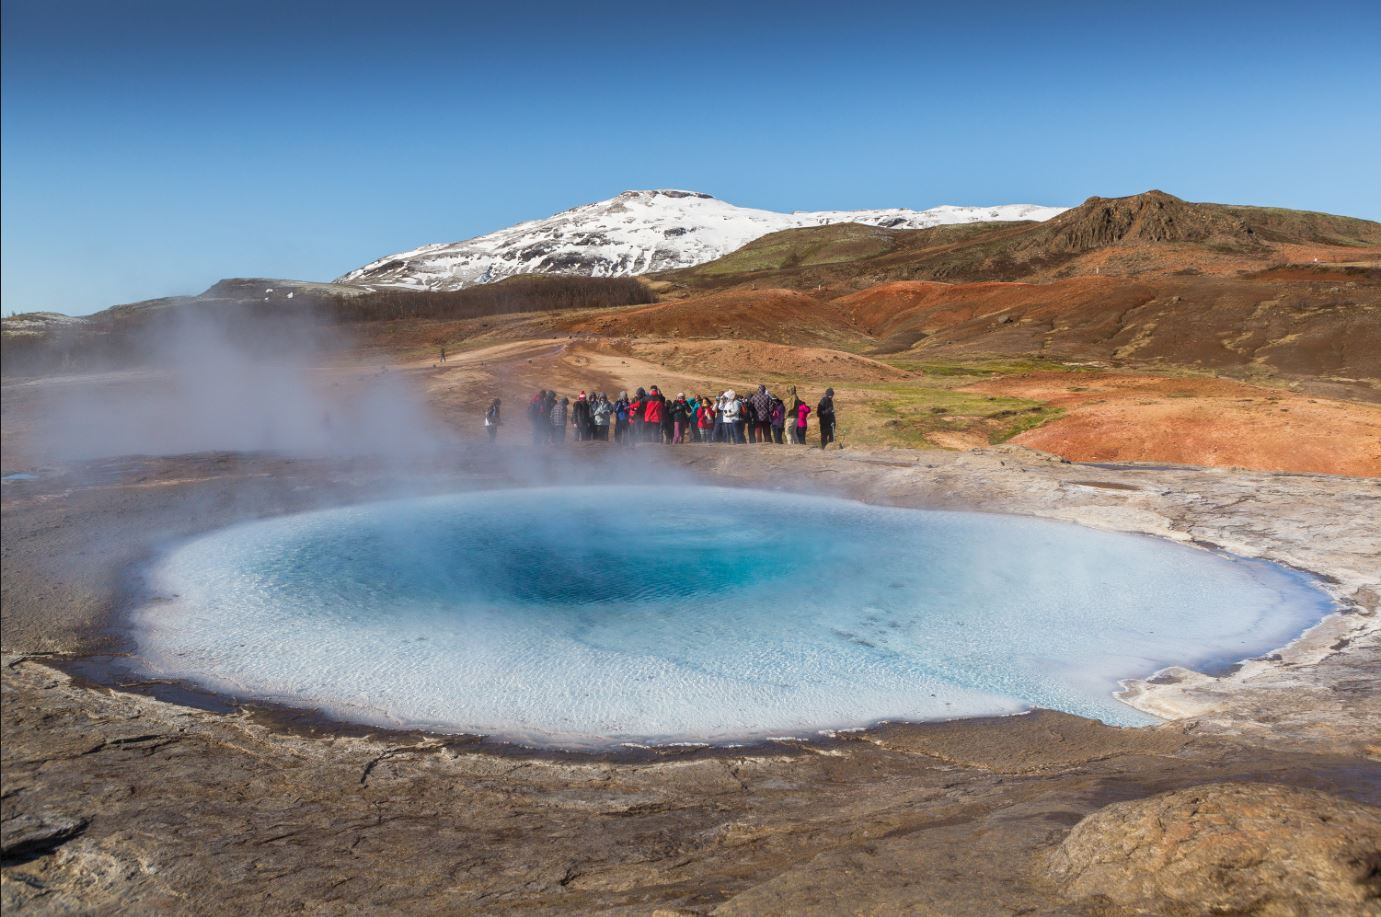 Iceland's tourism becomes a hot environmental topic